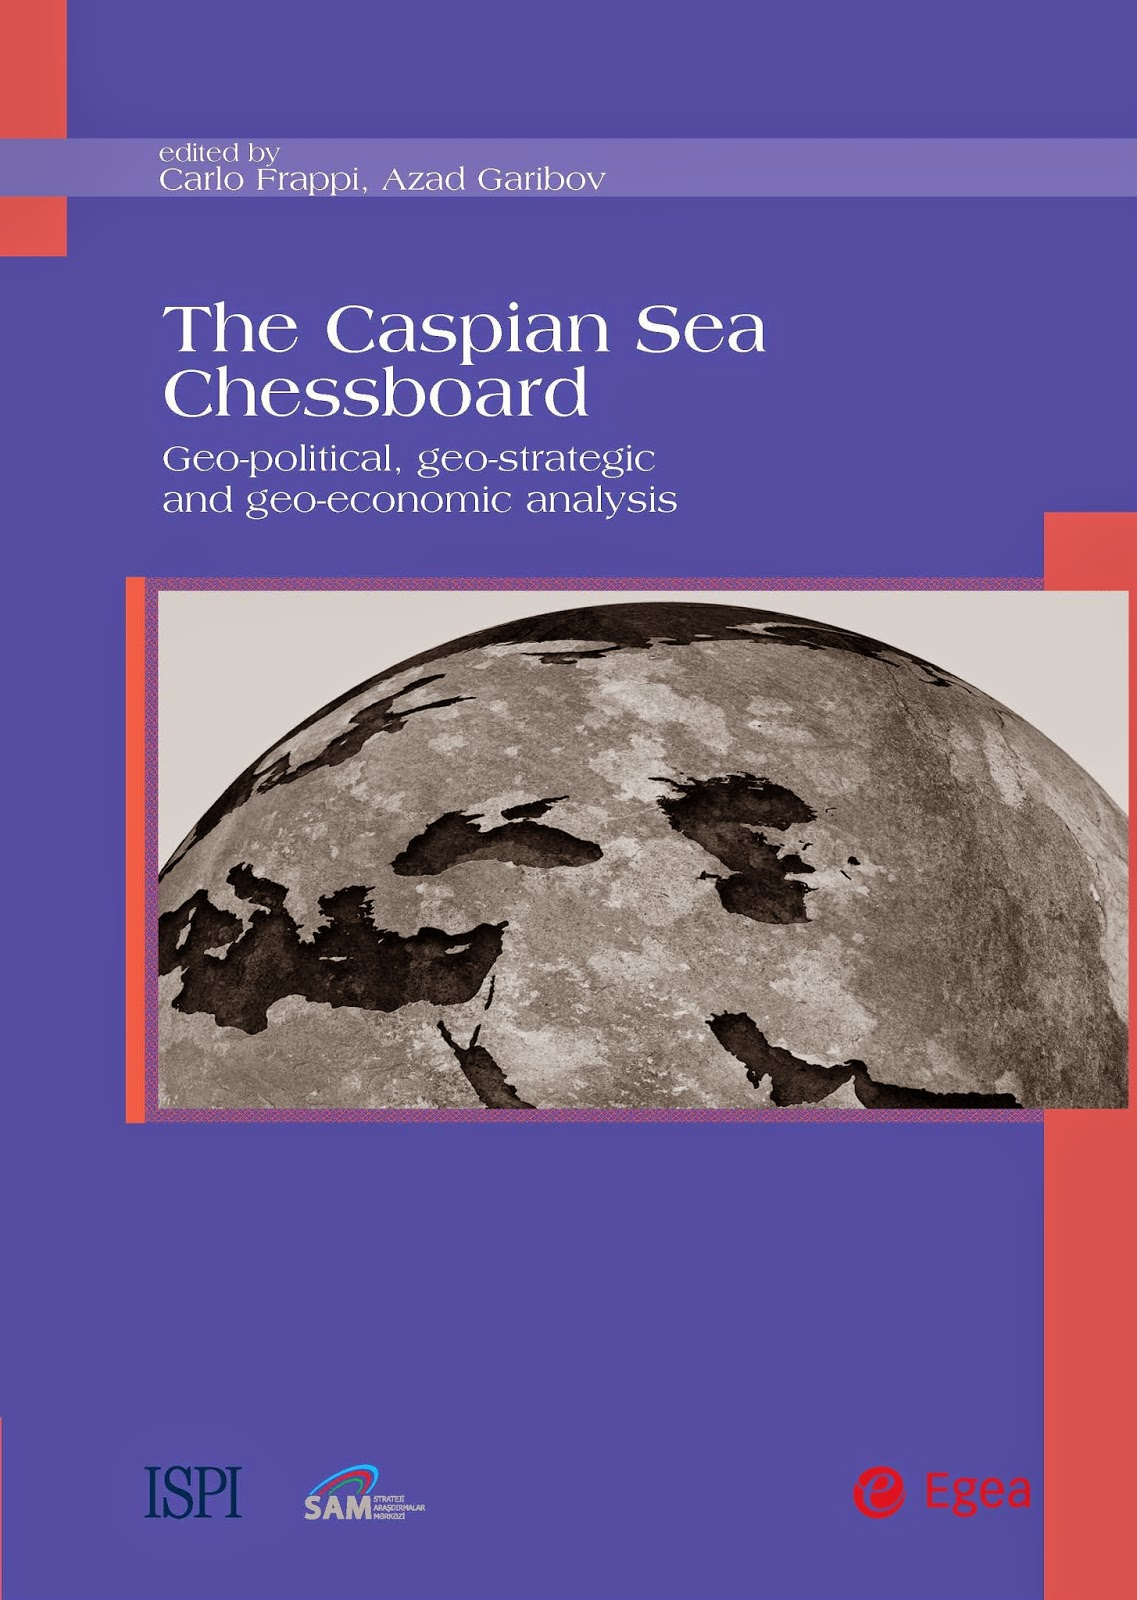 The Caspian Sea Chessboard